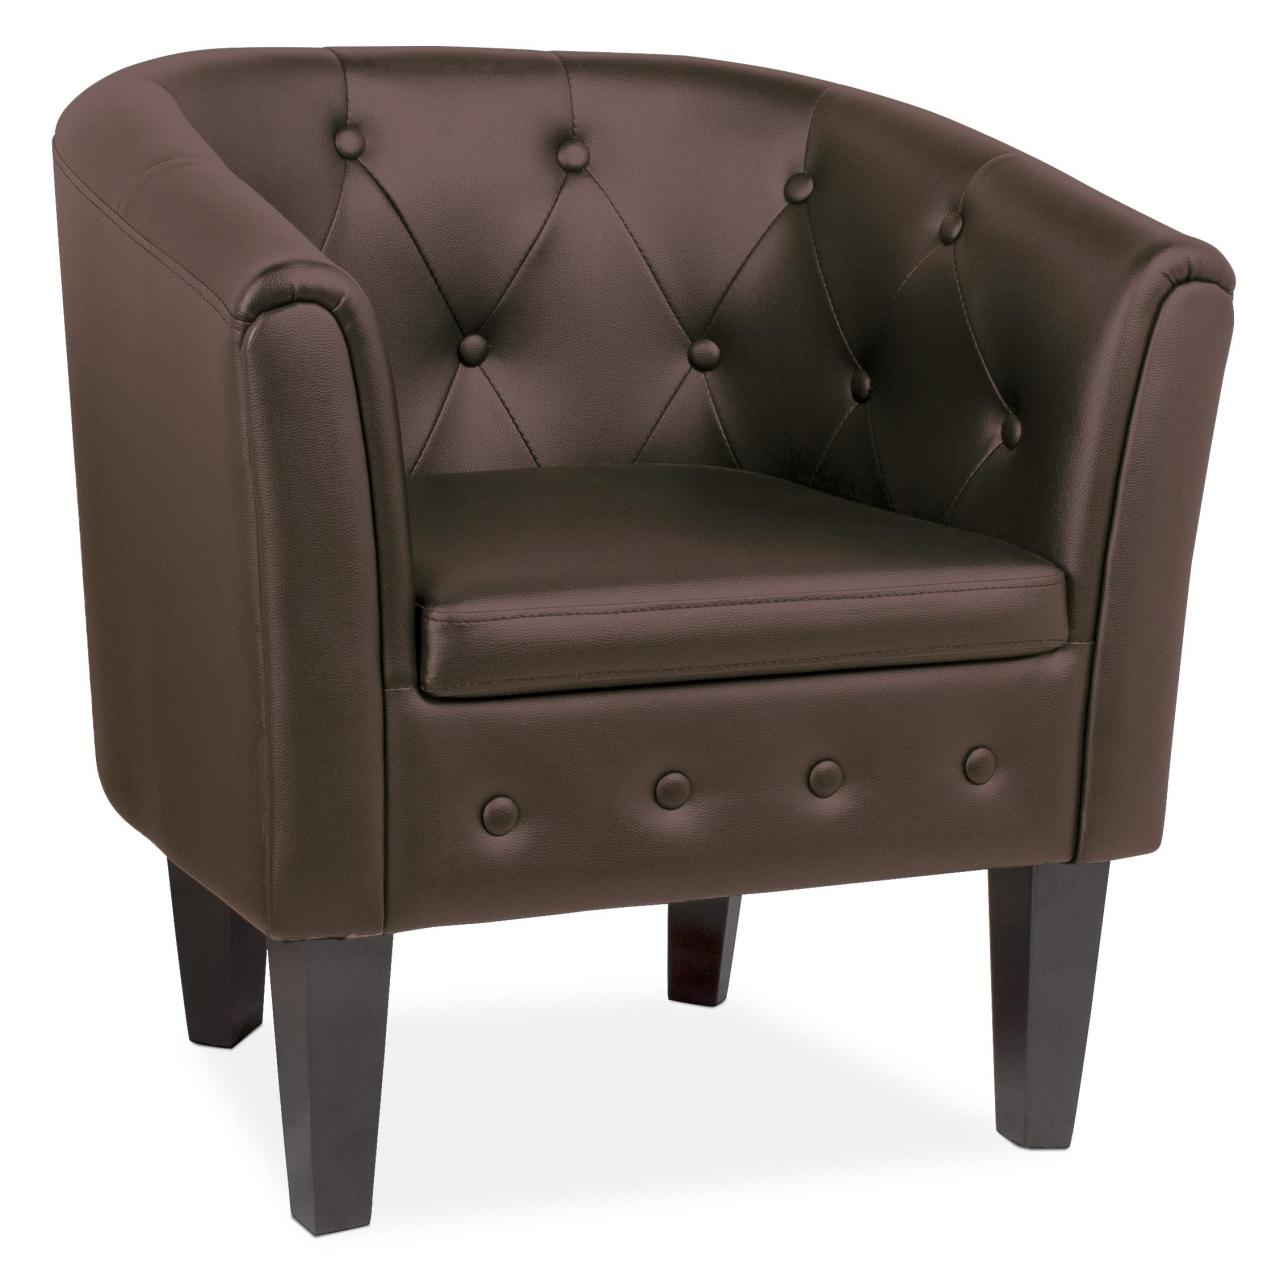 Chesterfield-Sessel-Lounge-Couch-Sofa-Buero-Moebel-Club-Edler-Clubsessel-Bar